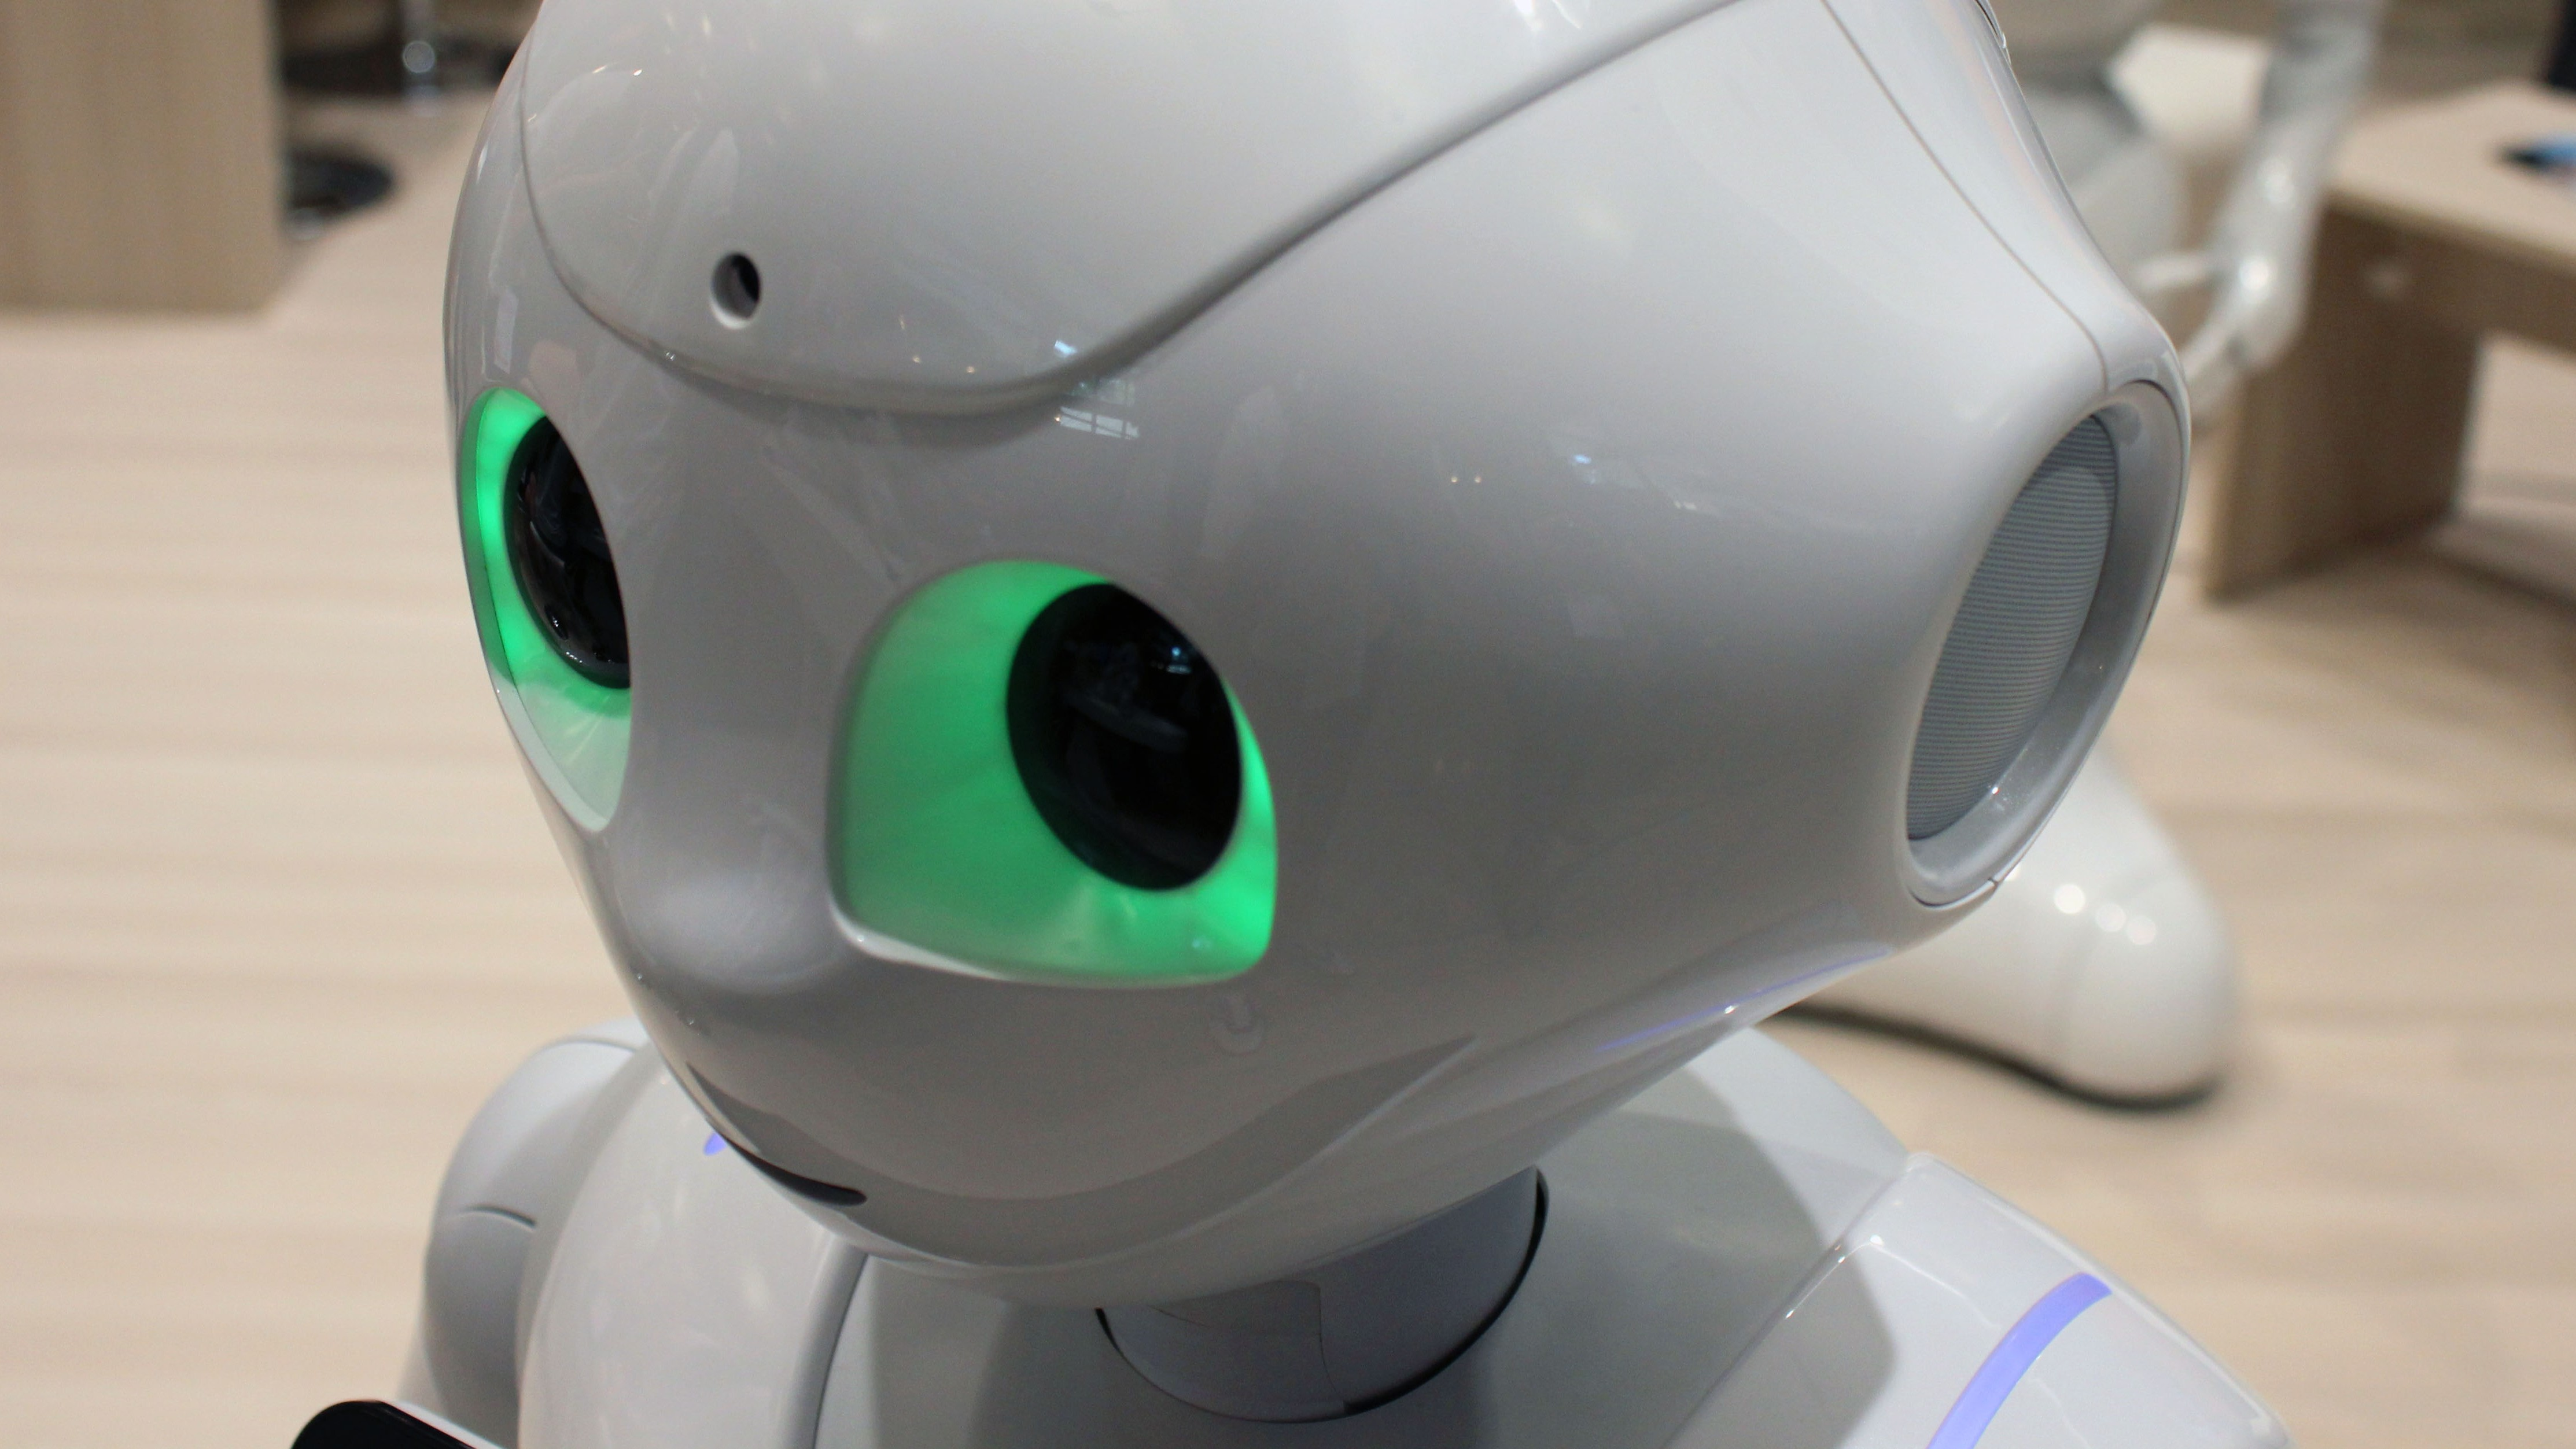 Your Smart Robot Is Coming in Five Years, But It Might Get Hacked and Kill You